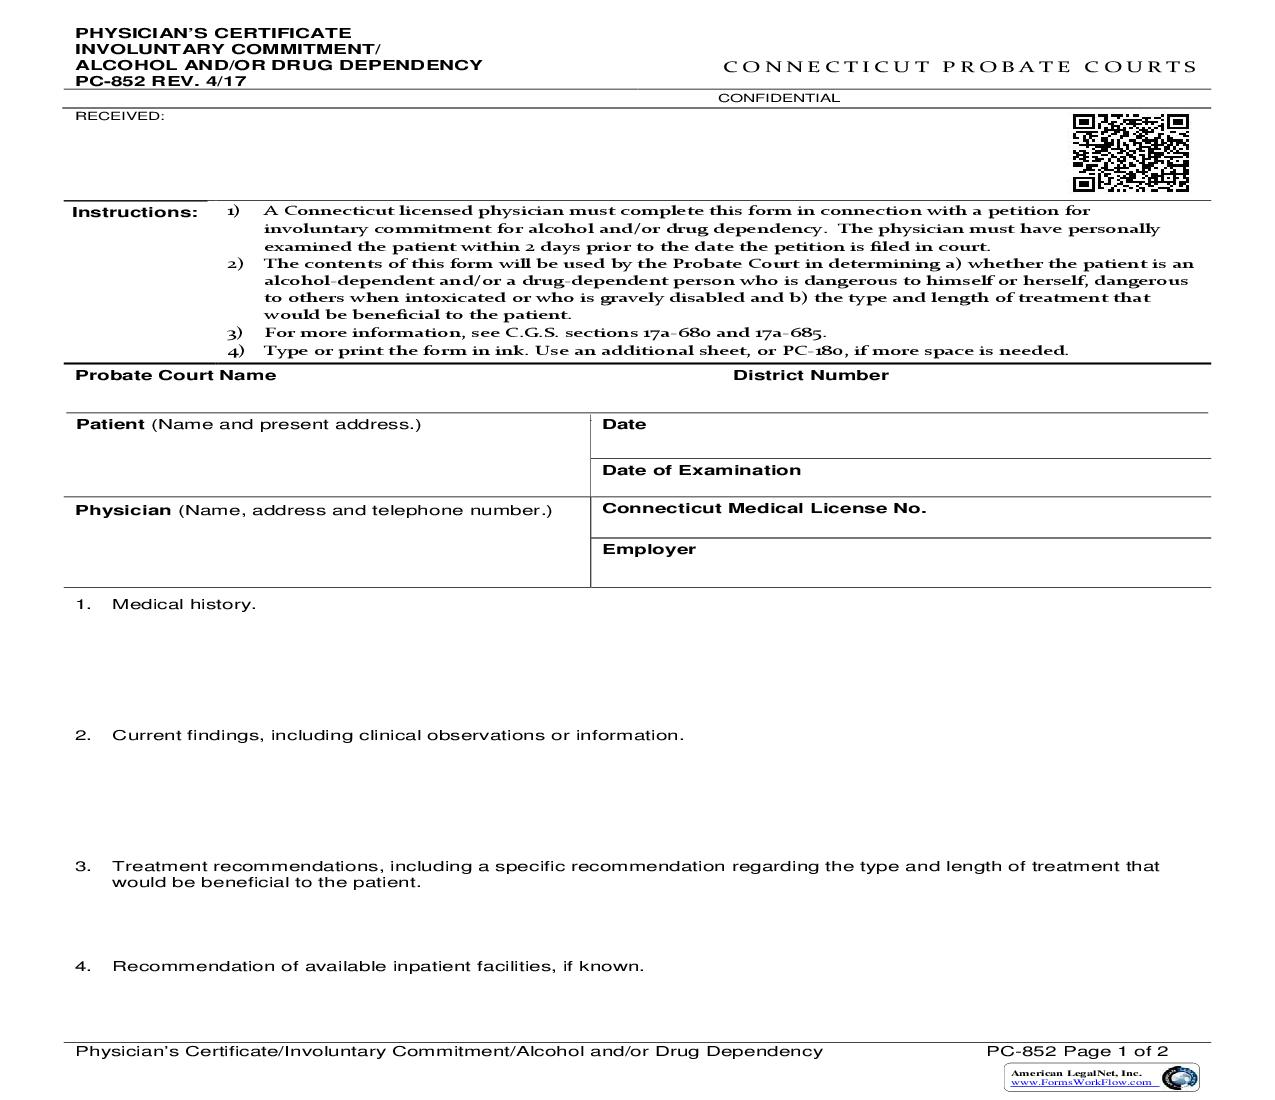 Physicians Certificate Involuntary Commitment Alcohol And Or Drug Dependency {PC-852}   Pdf Fpdf Doc Docx   Connecticut